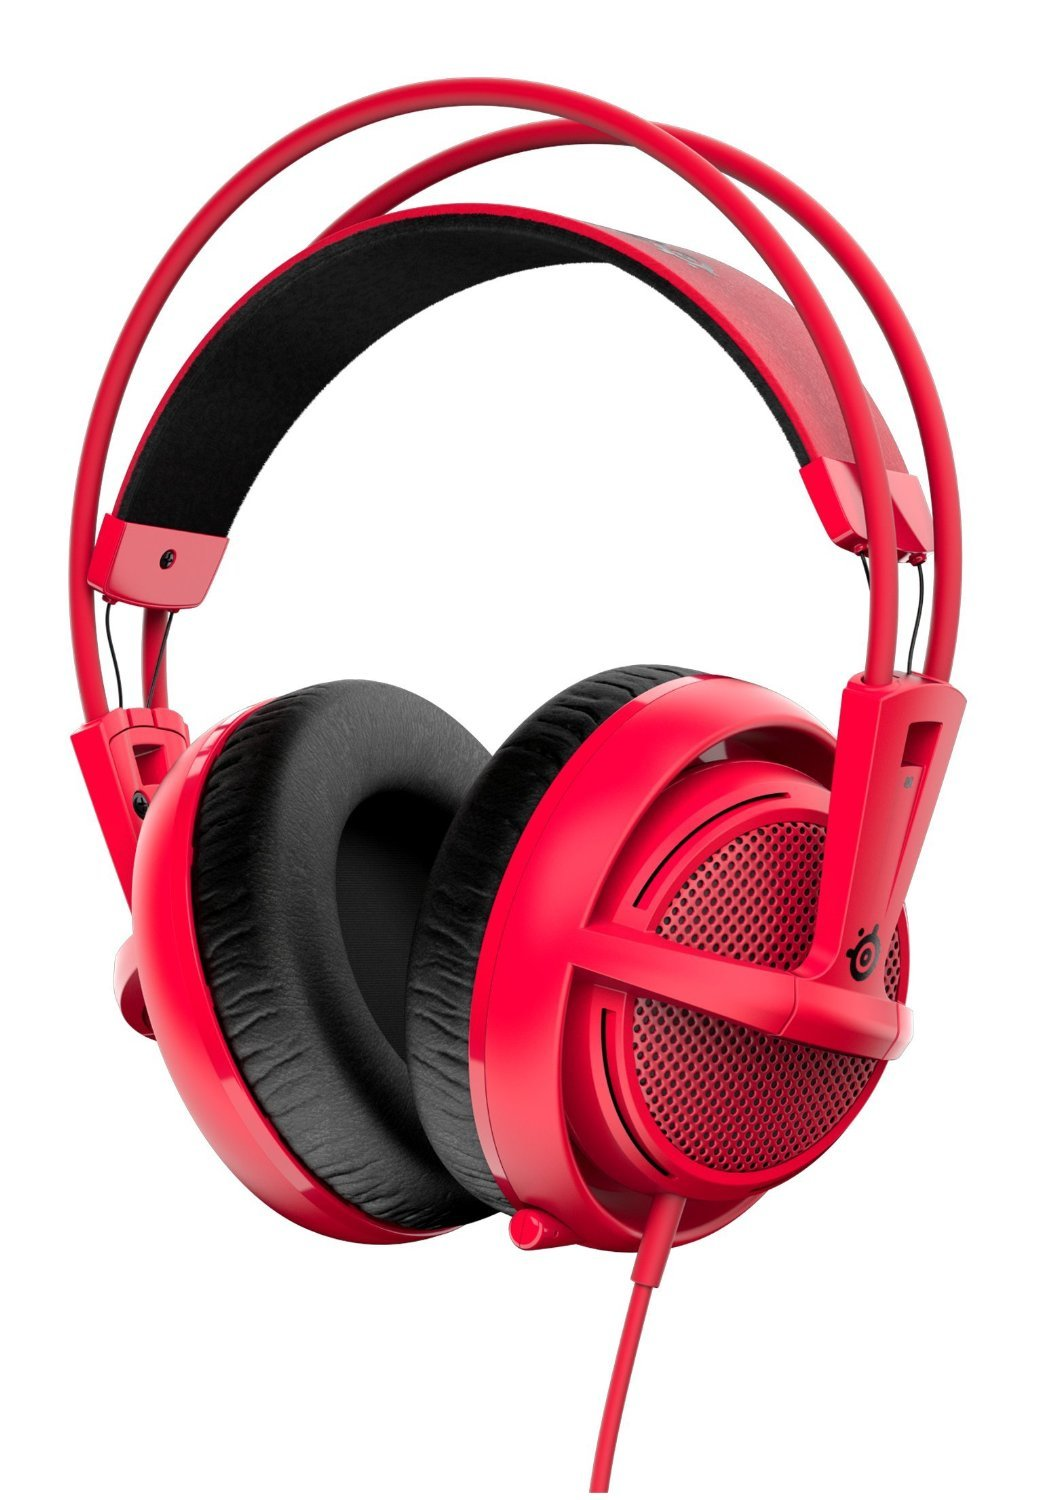 SteelSeries Siberia 200 Headset - Forged Red for PS4 image